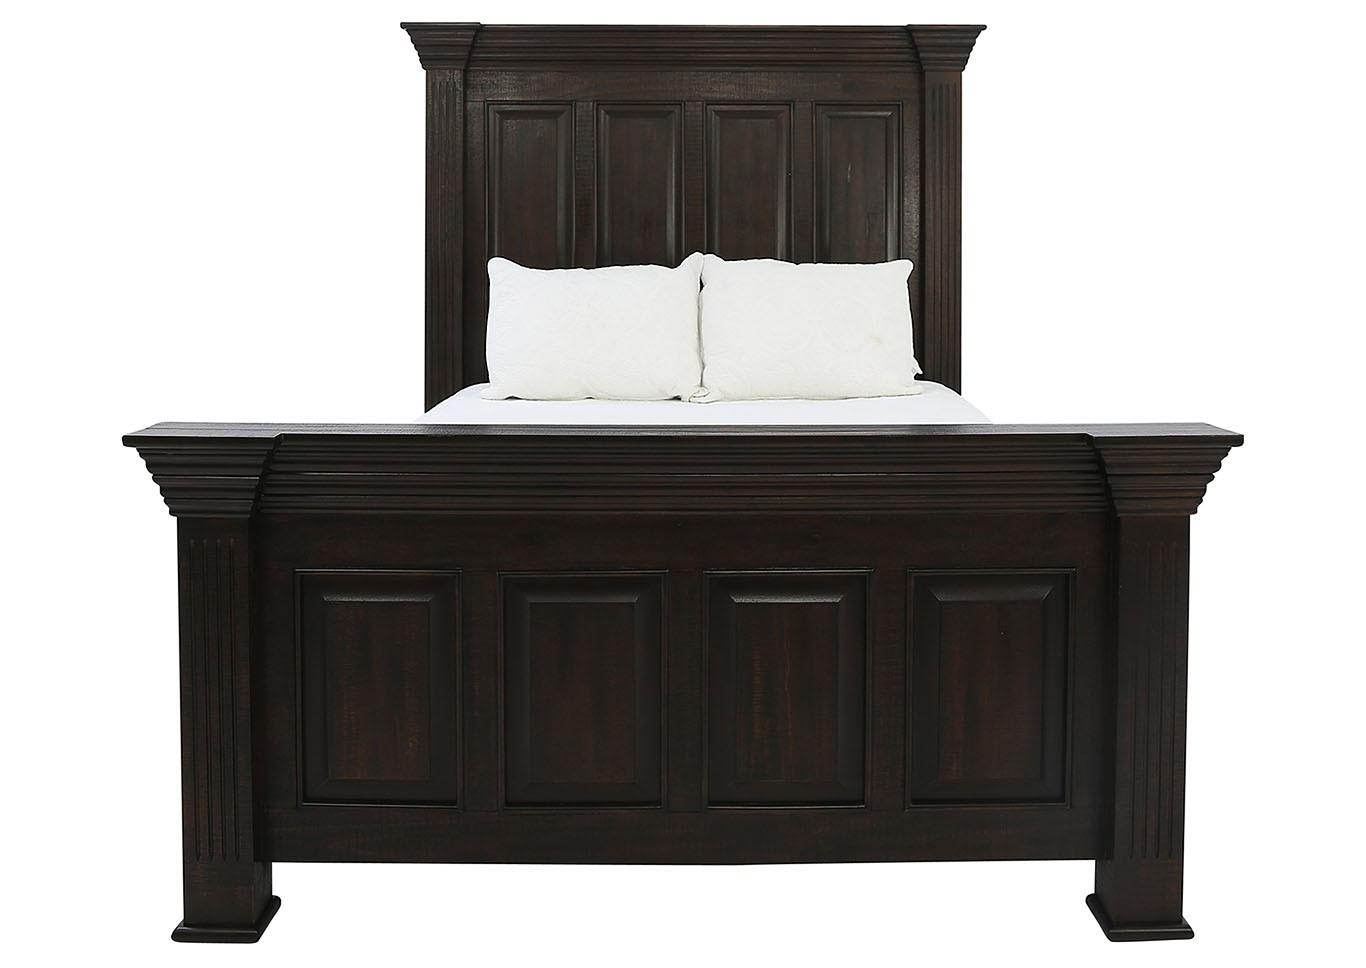 ROSLINDALE TOBACCO QUEEN PANEL BED,LIFESTYLE FURNITURE